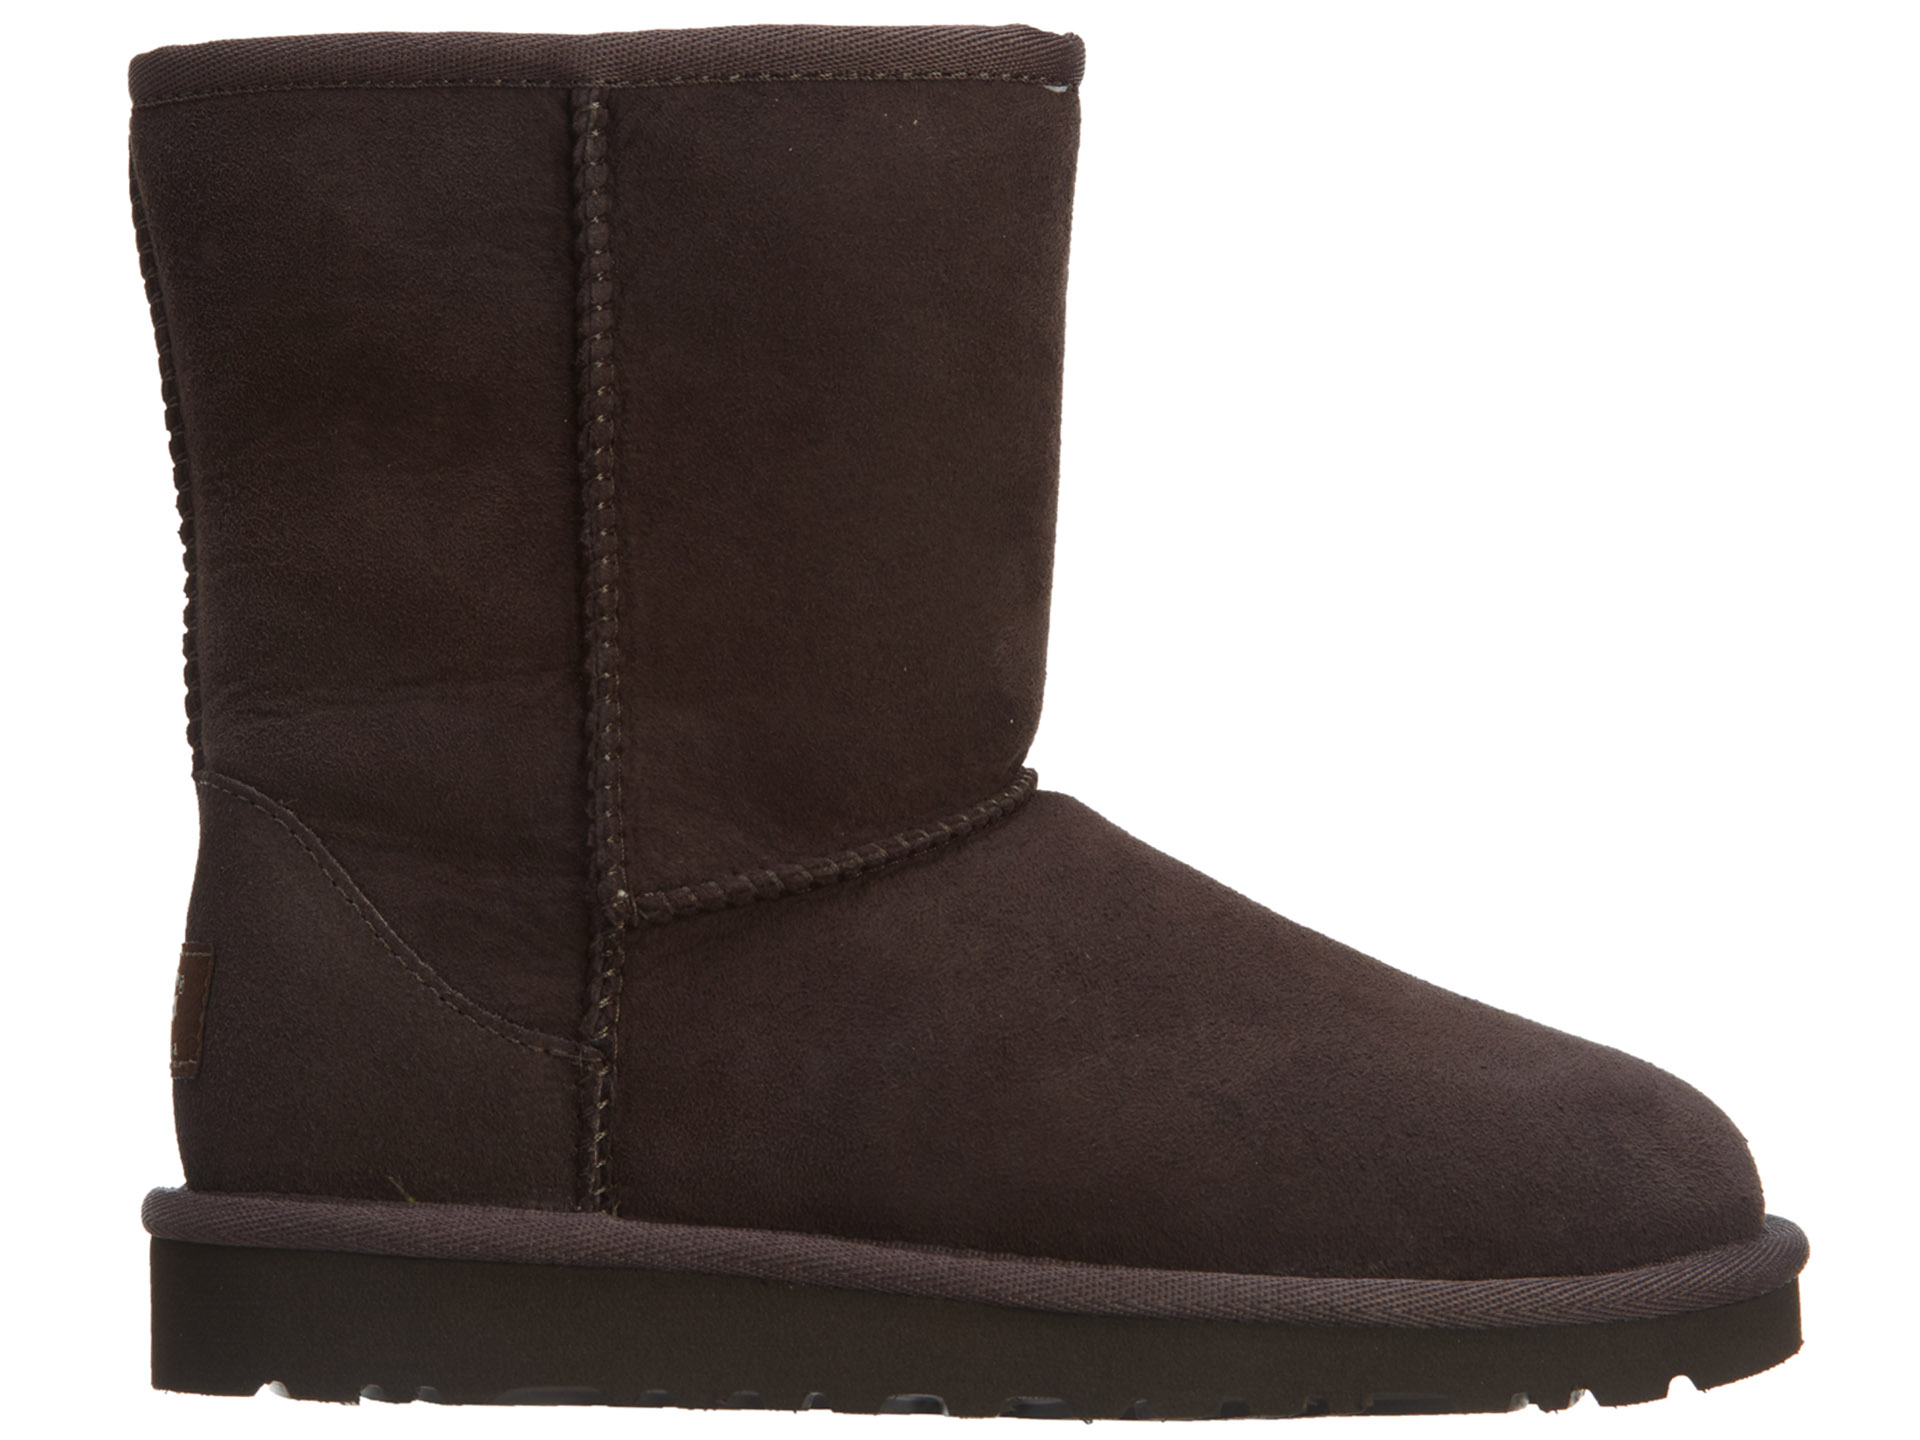 76a09cc9acd Details about UGG Little Kids Girls Classic Boots Chocolate 5251K